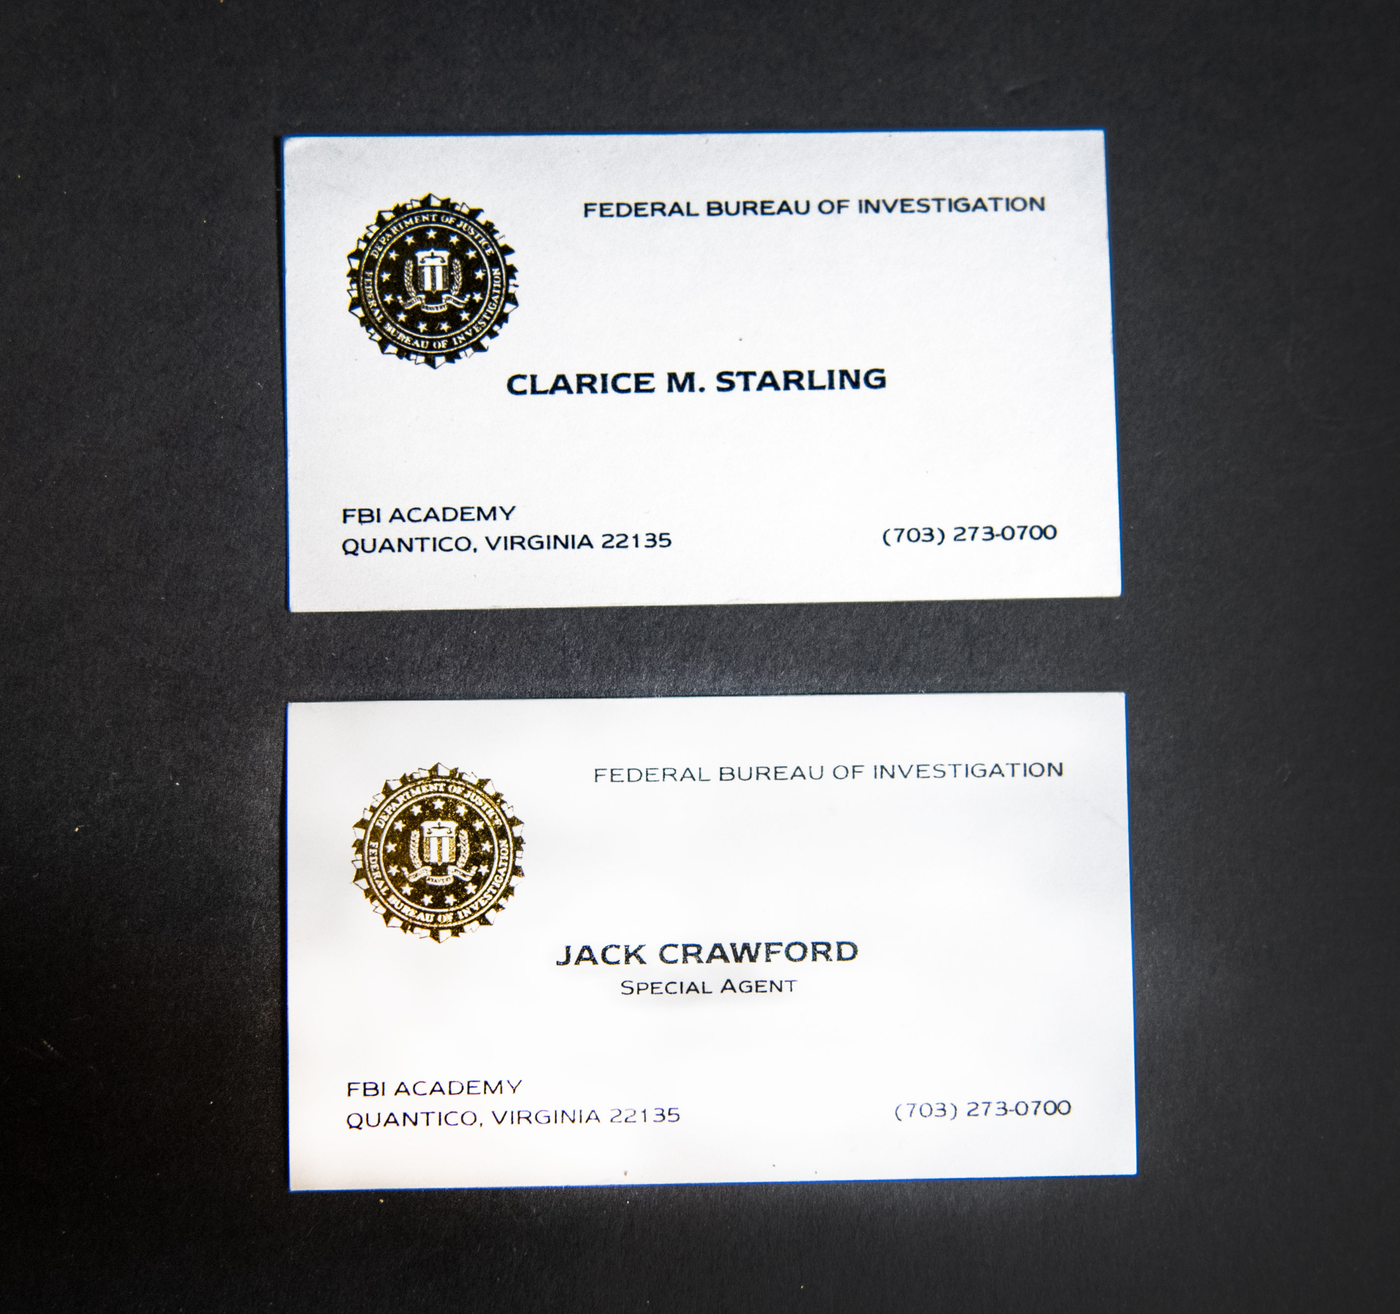 The FBI's February Artifact of the Month is a set of business cards—one for Clarice Starling and one for Jack Crawford. They were one of the many small props to bring authenticity to the set of The Silence of the Lambs.